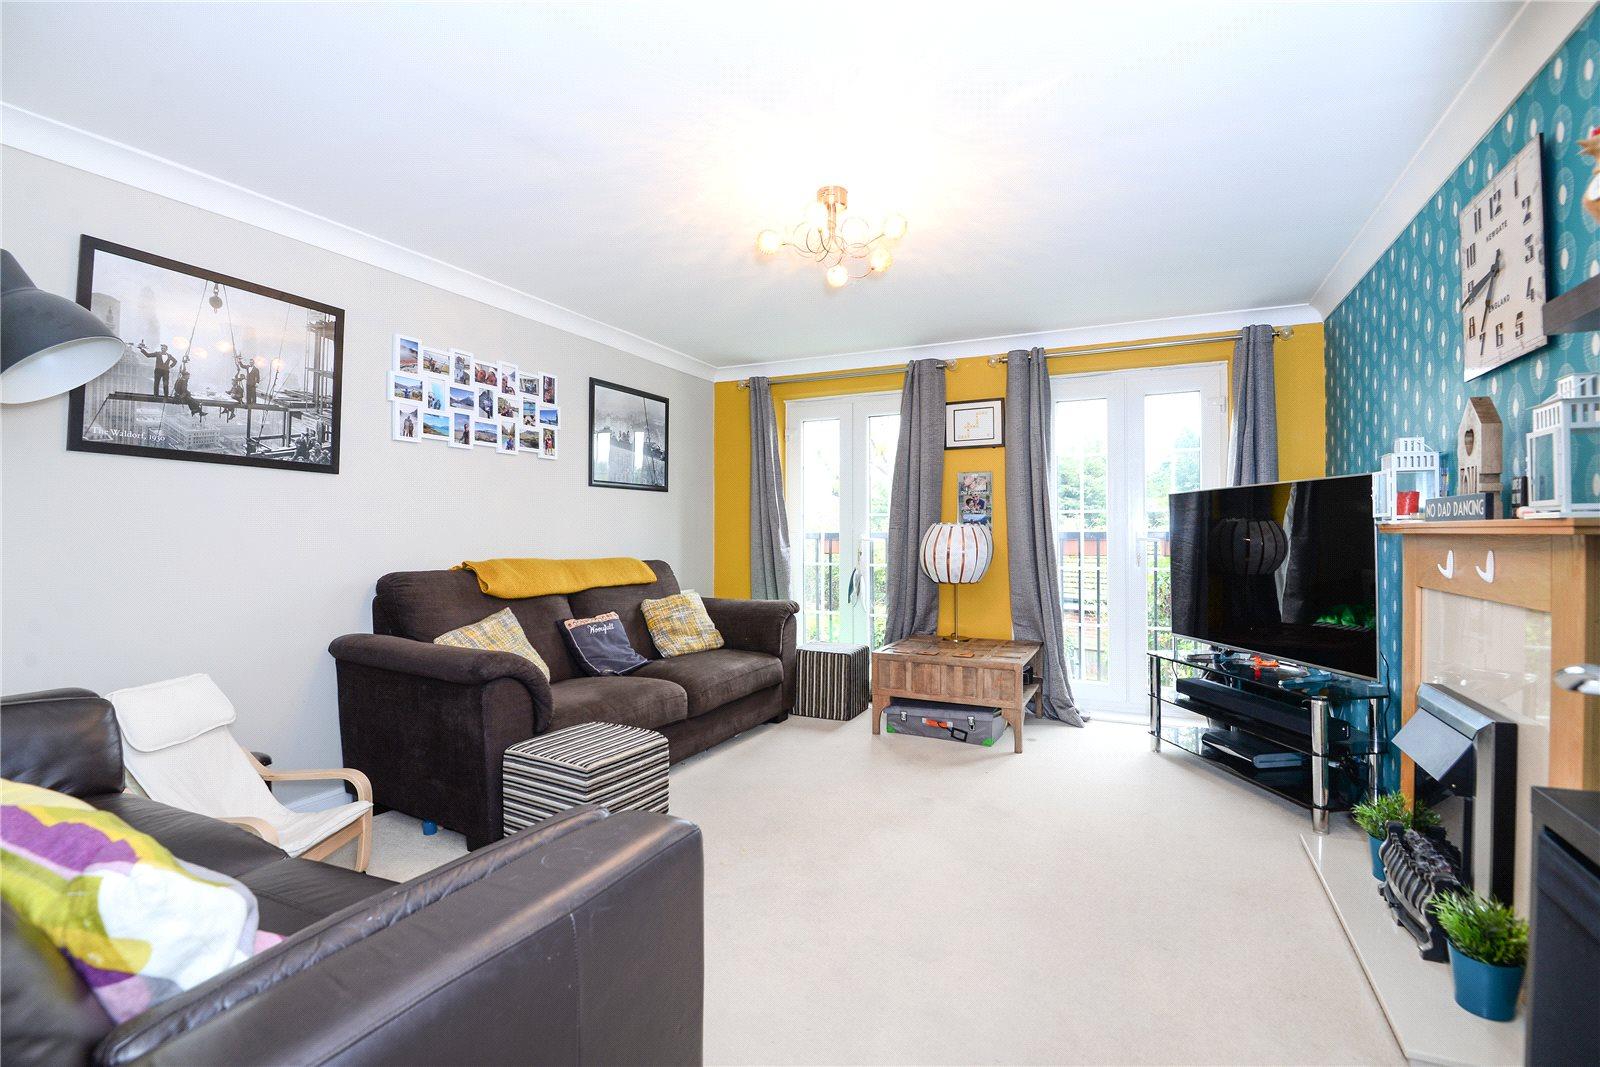 3 Bedrooms Terraced House for sale in Benham Drive, Spencers Wood, Reading, Berkshire, RG7